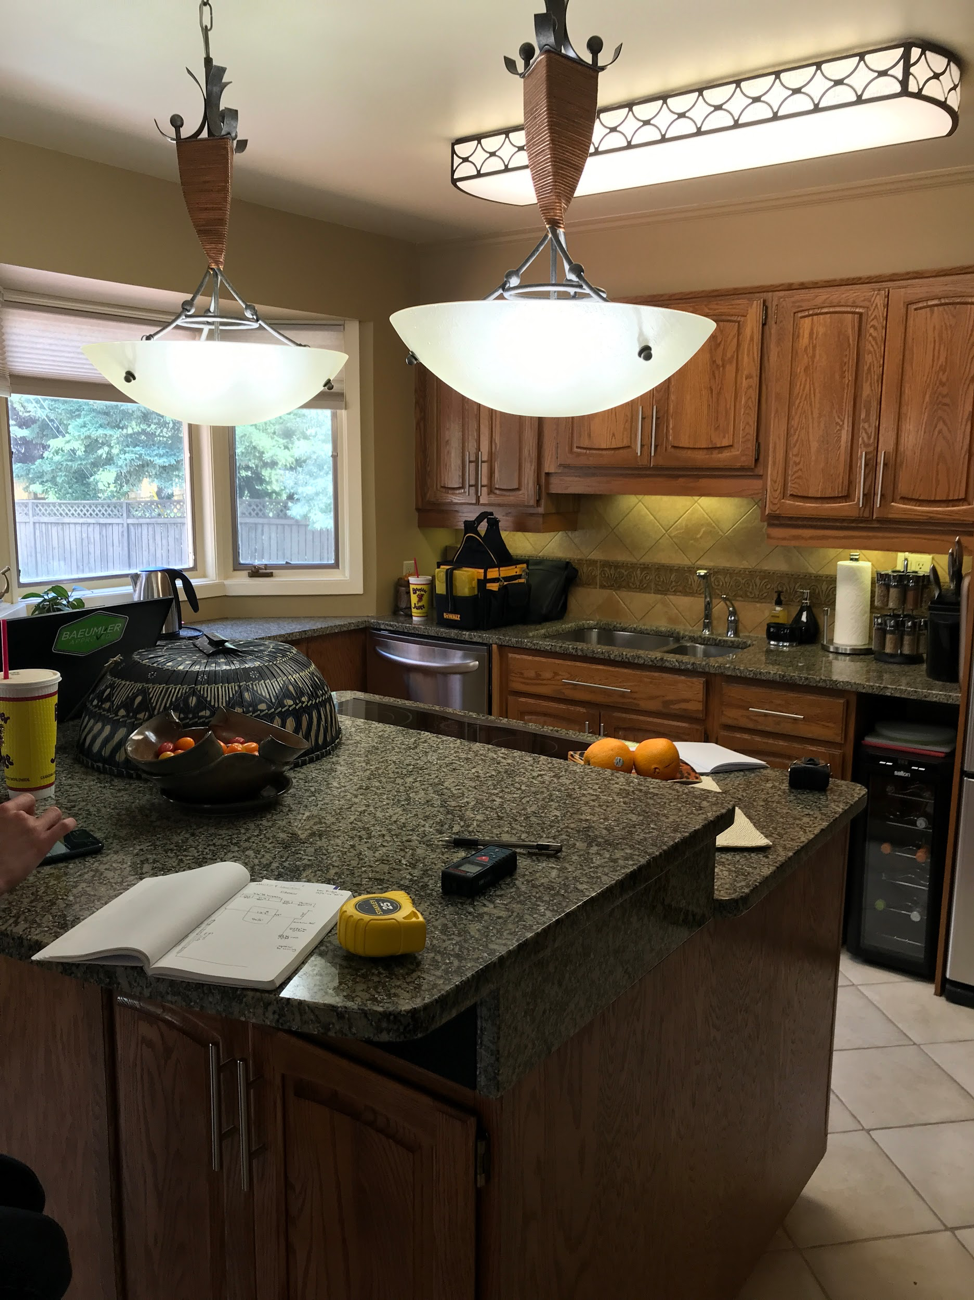 This dark and dated kitchen needed help - To stay on budget all while staying fresh and Modern, IKEA + Kitch was the answer.